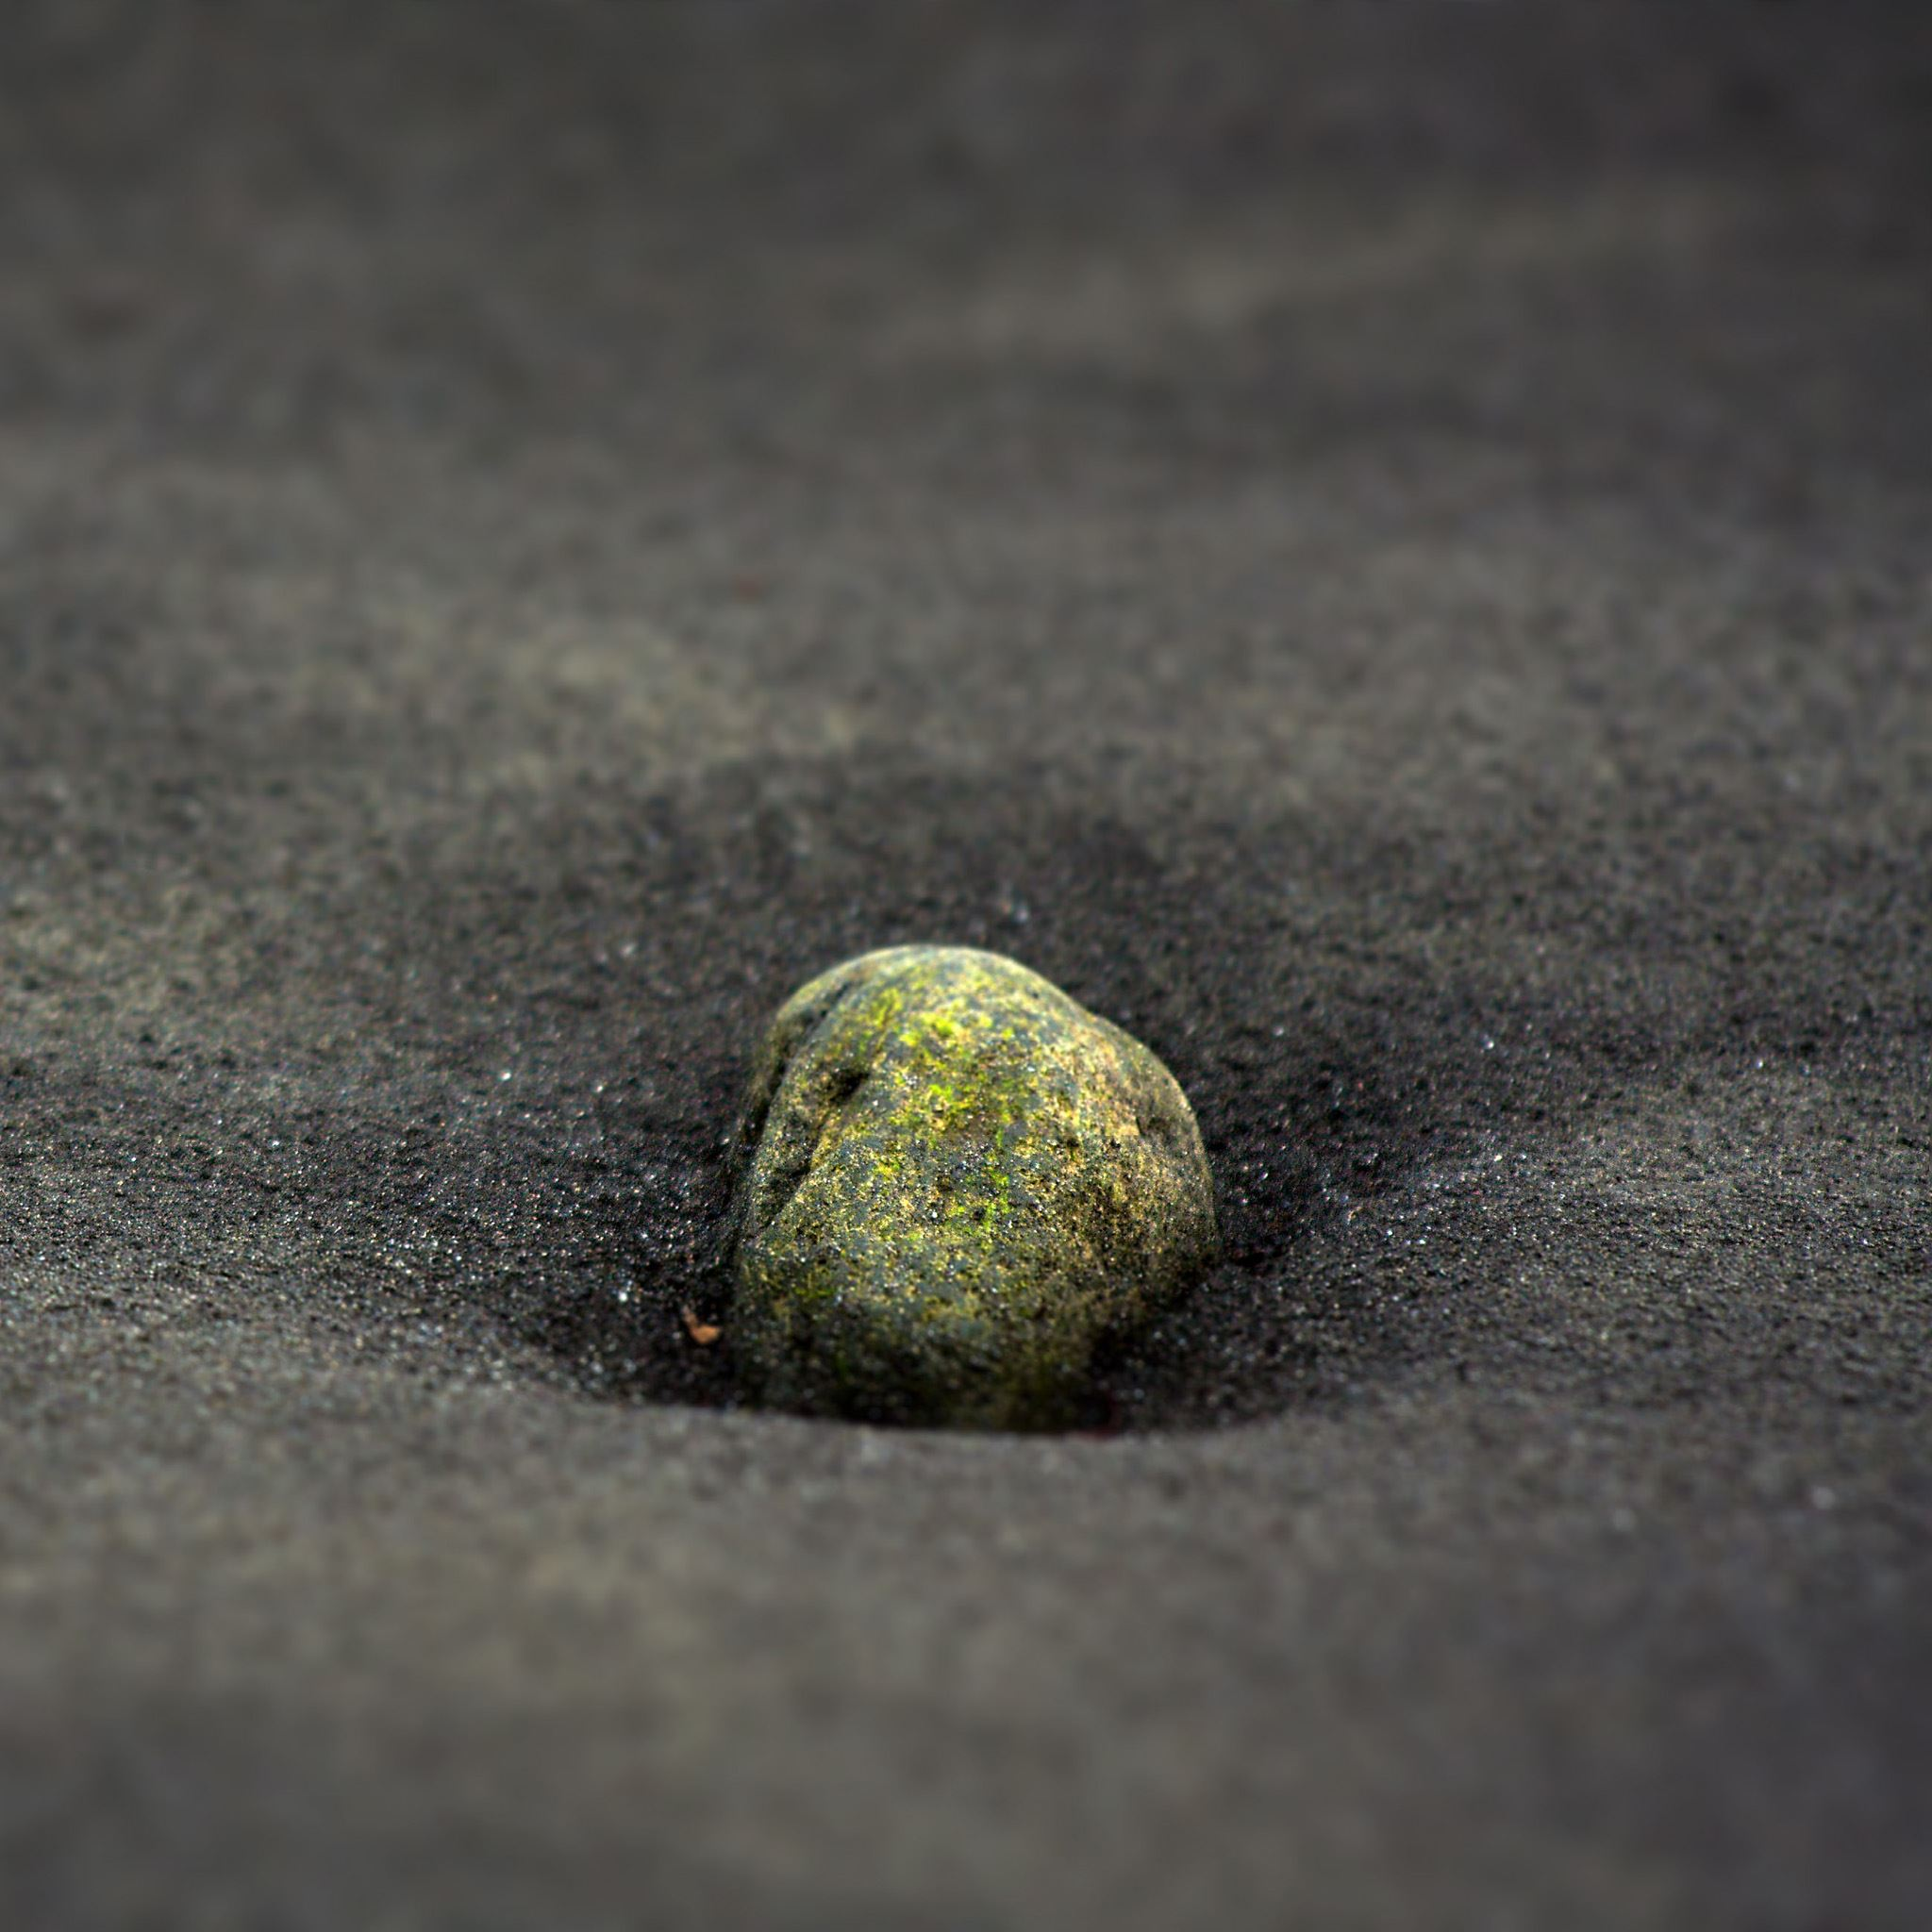 Stone In black sand iPad Air wallpaper